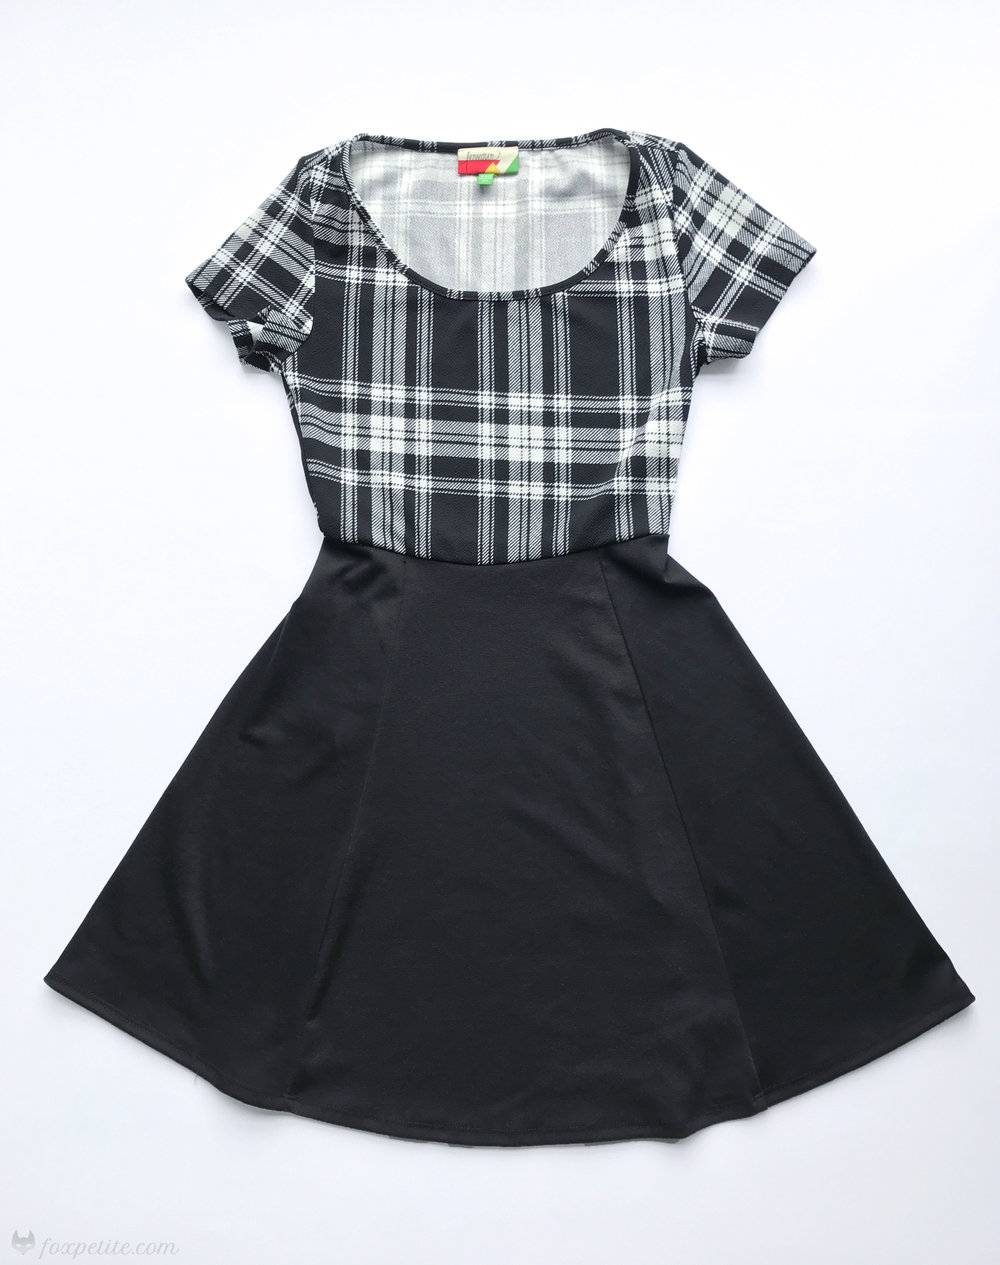 Fox Petite - Fervour Modcloth Won't Setlist for Less dress in black and white plaid flat lay